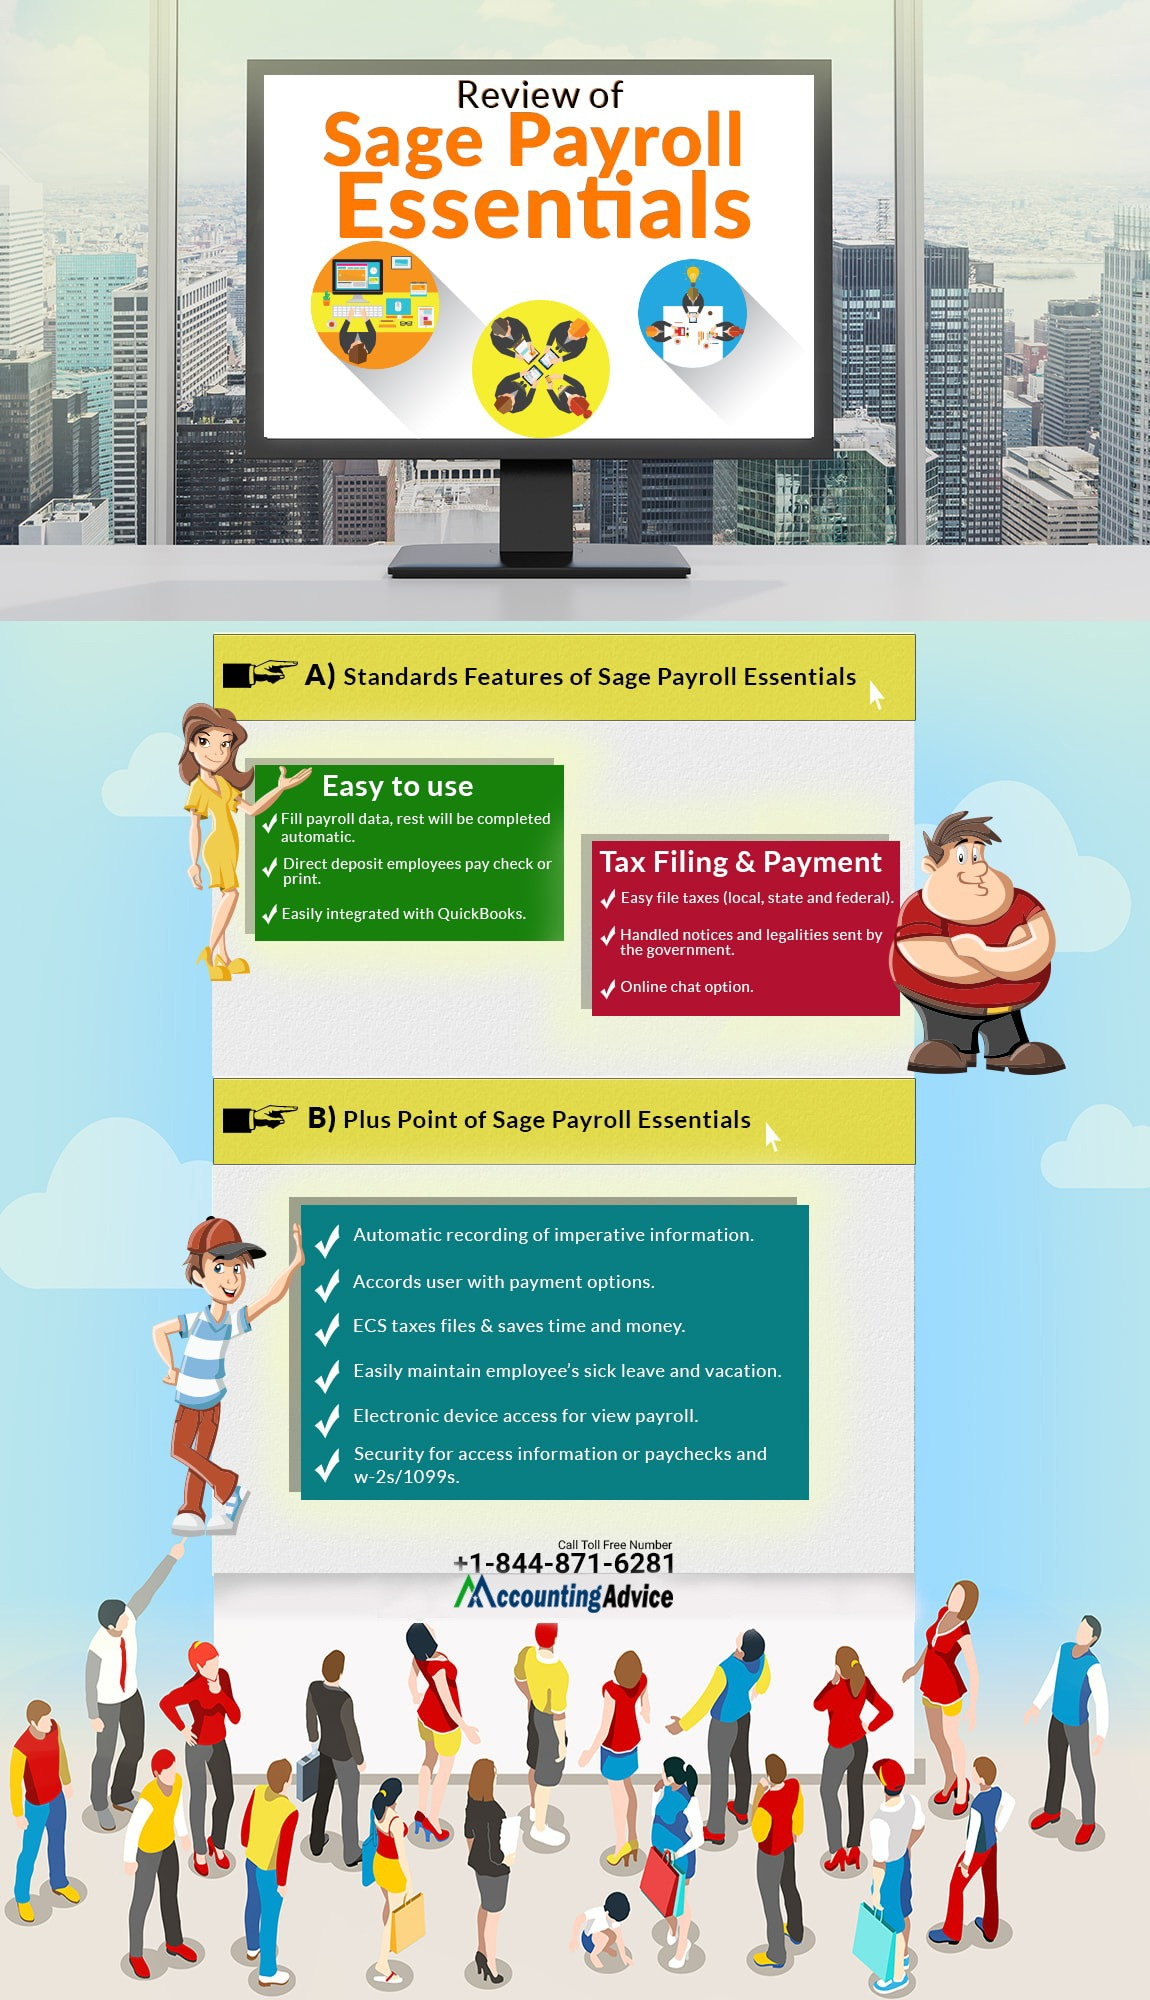 infographic-Review of Sage Payroll Essentials